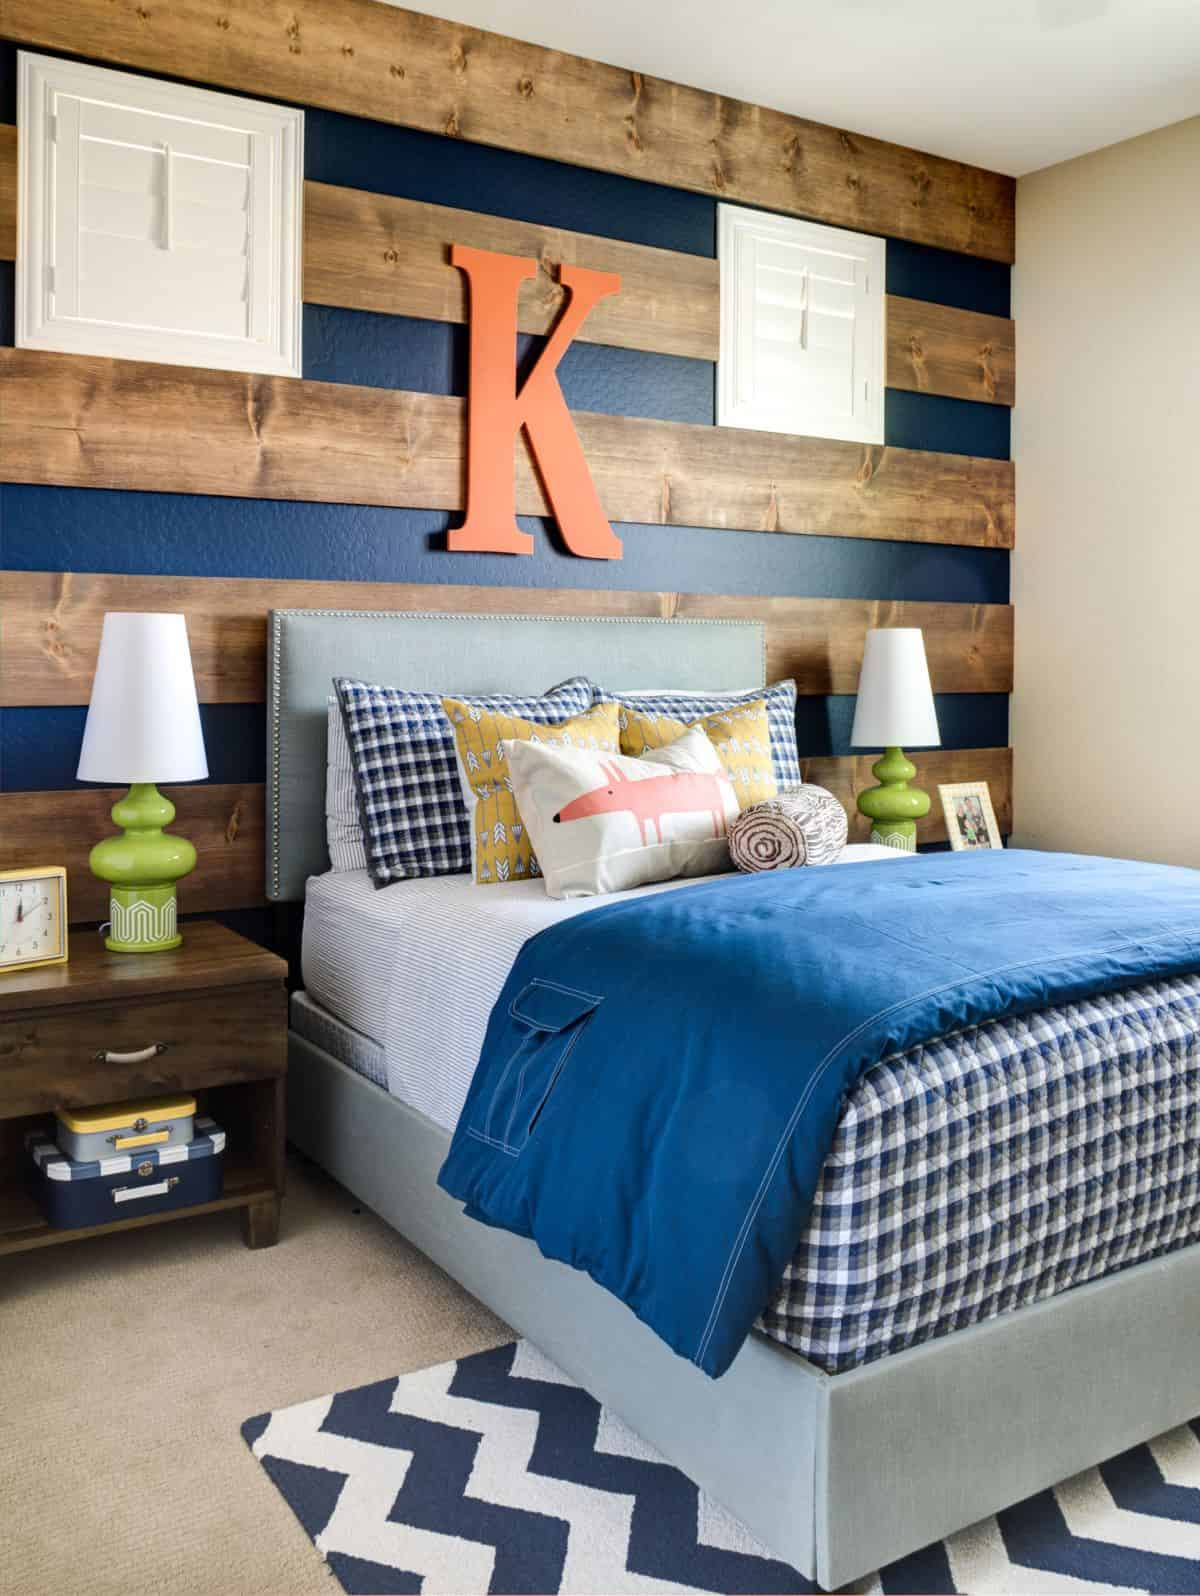 Paint and wood accent wall